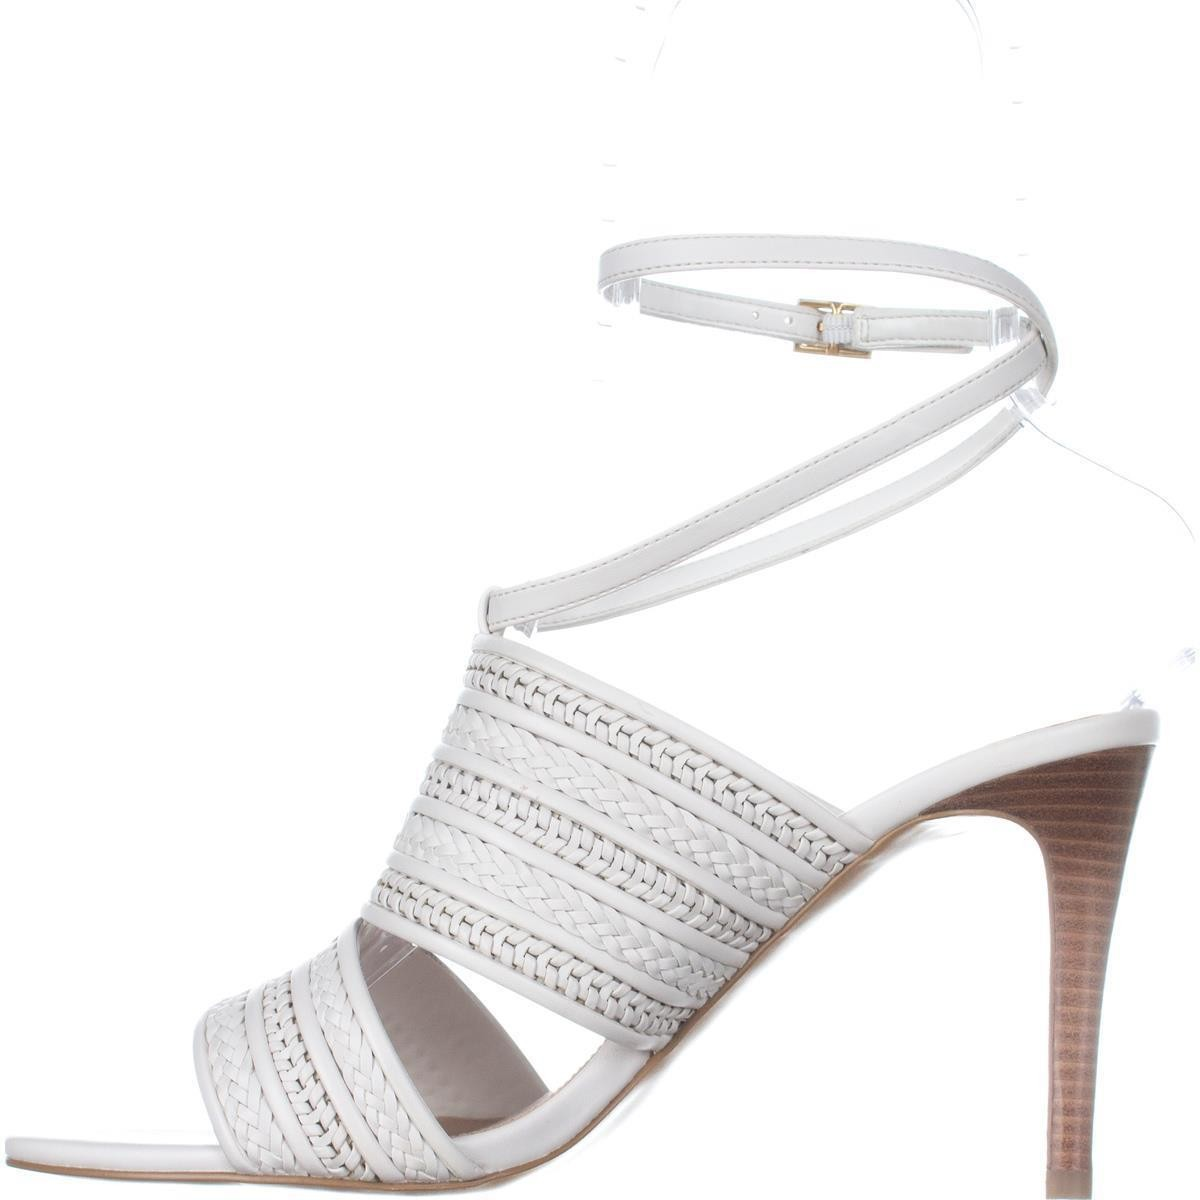 93d766bfd85 BCBGeneration Womens Karli Open Toe Casual Ankle Strap Sandals